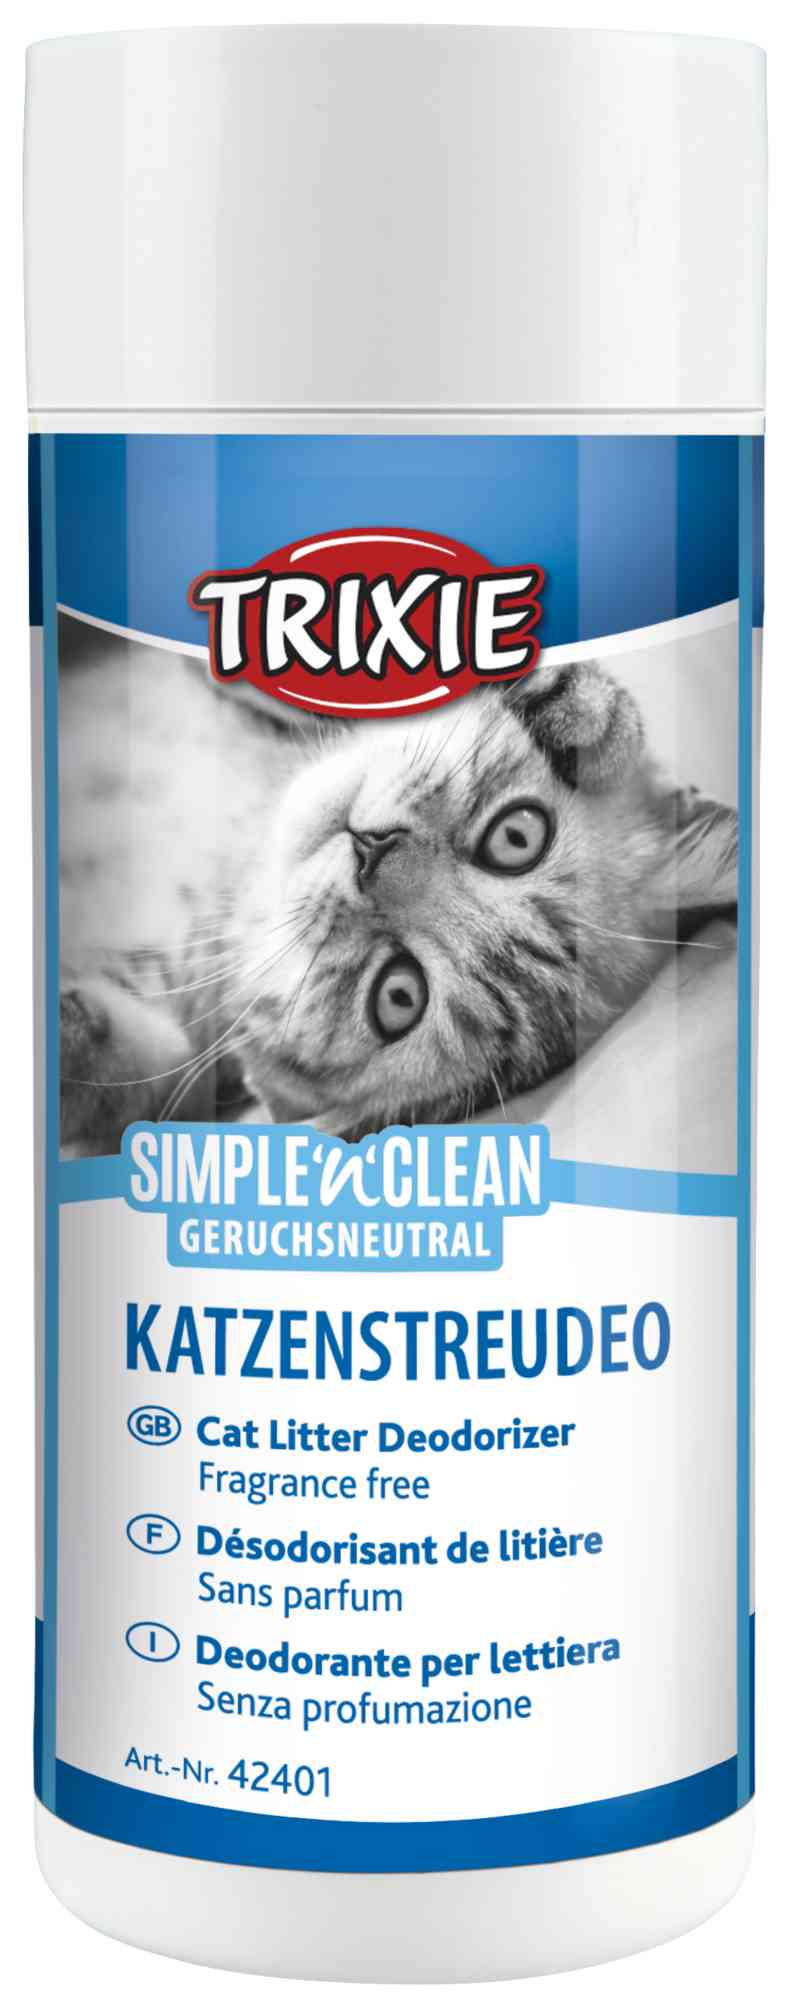 TRIXIE Simple'n'Clean Katzenstreudeo, geruchsneutral, 200 g